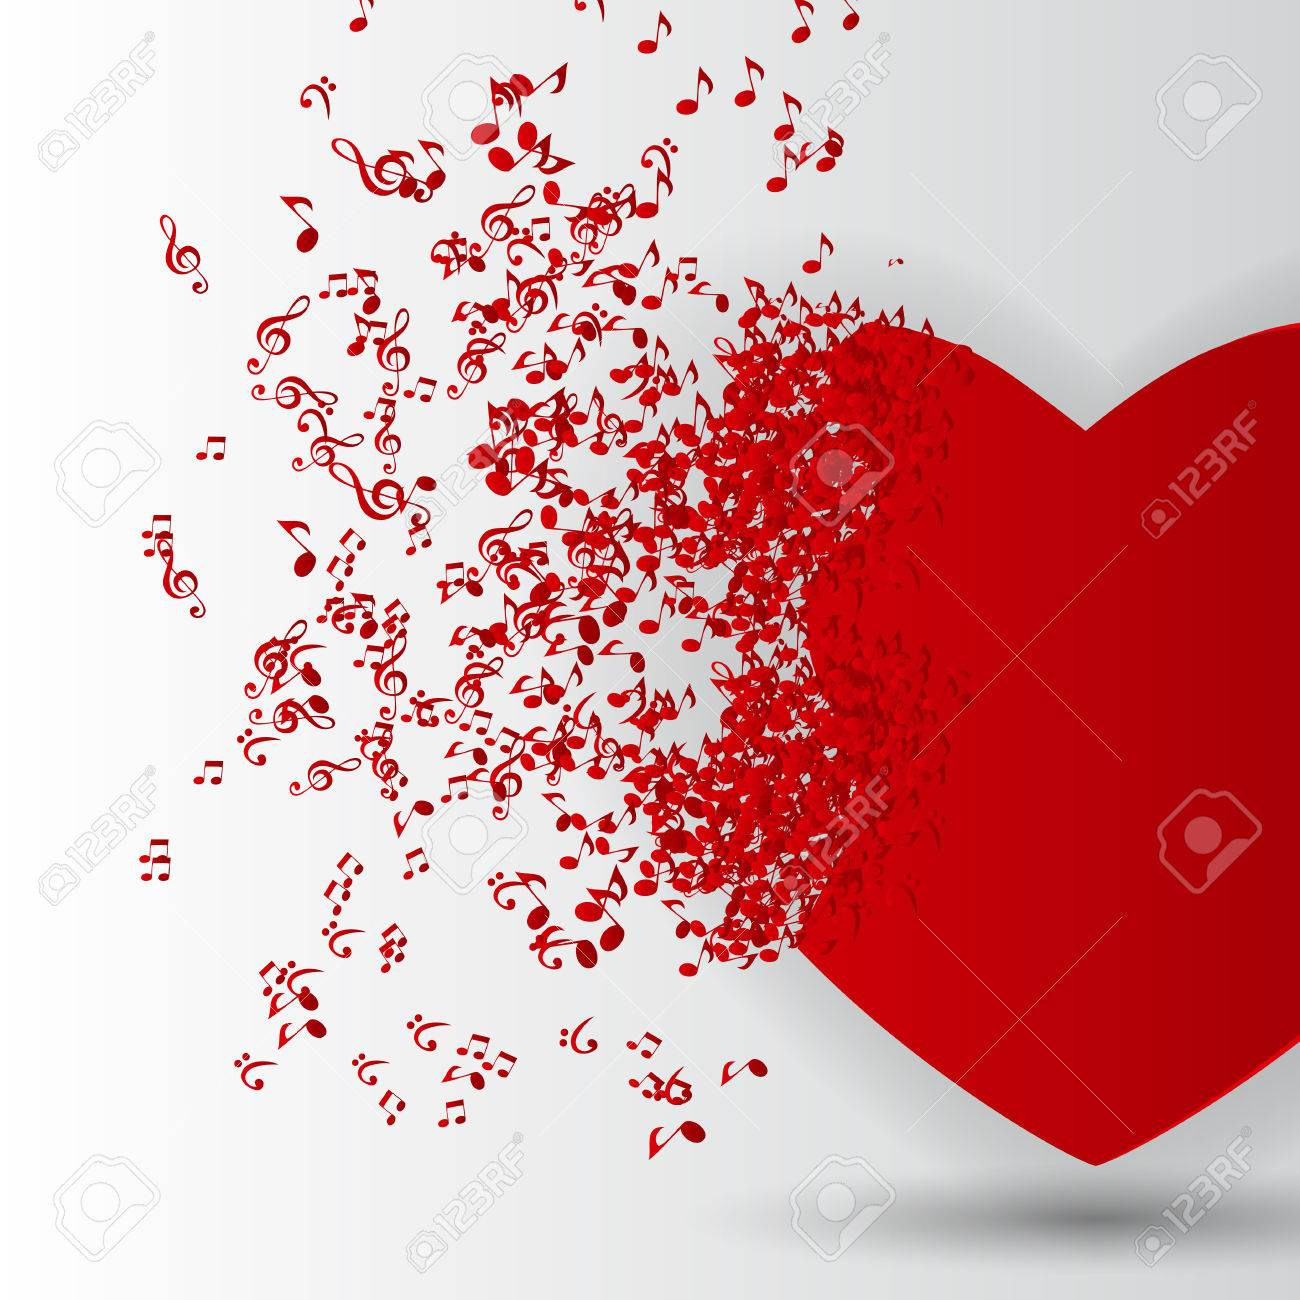 Happy Valentines Day Card  with Heart, Music Notes. Vector Illustration Stock Vector - 24874327